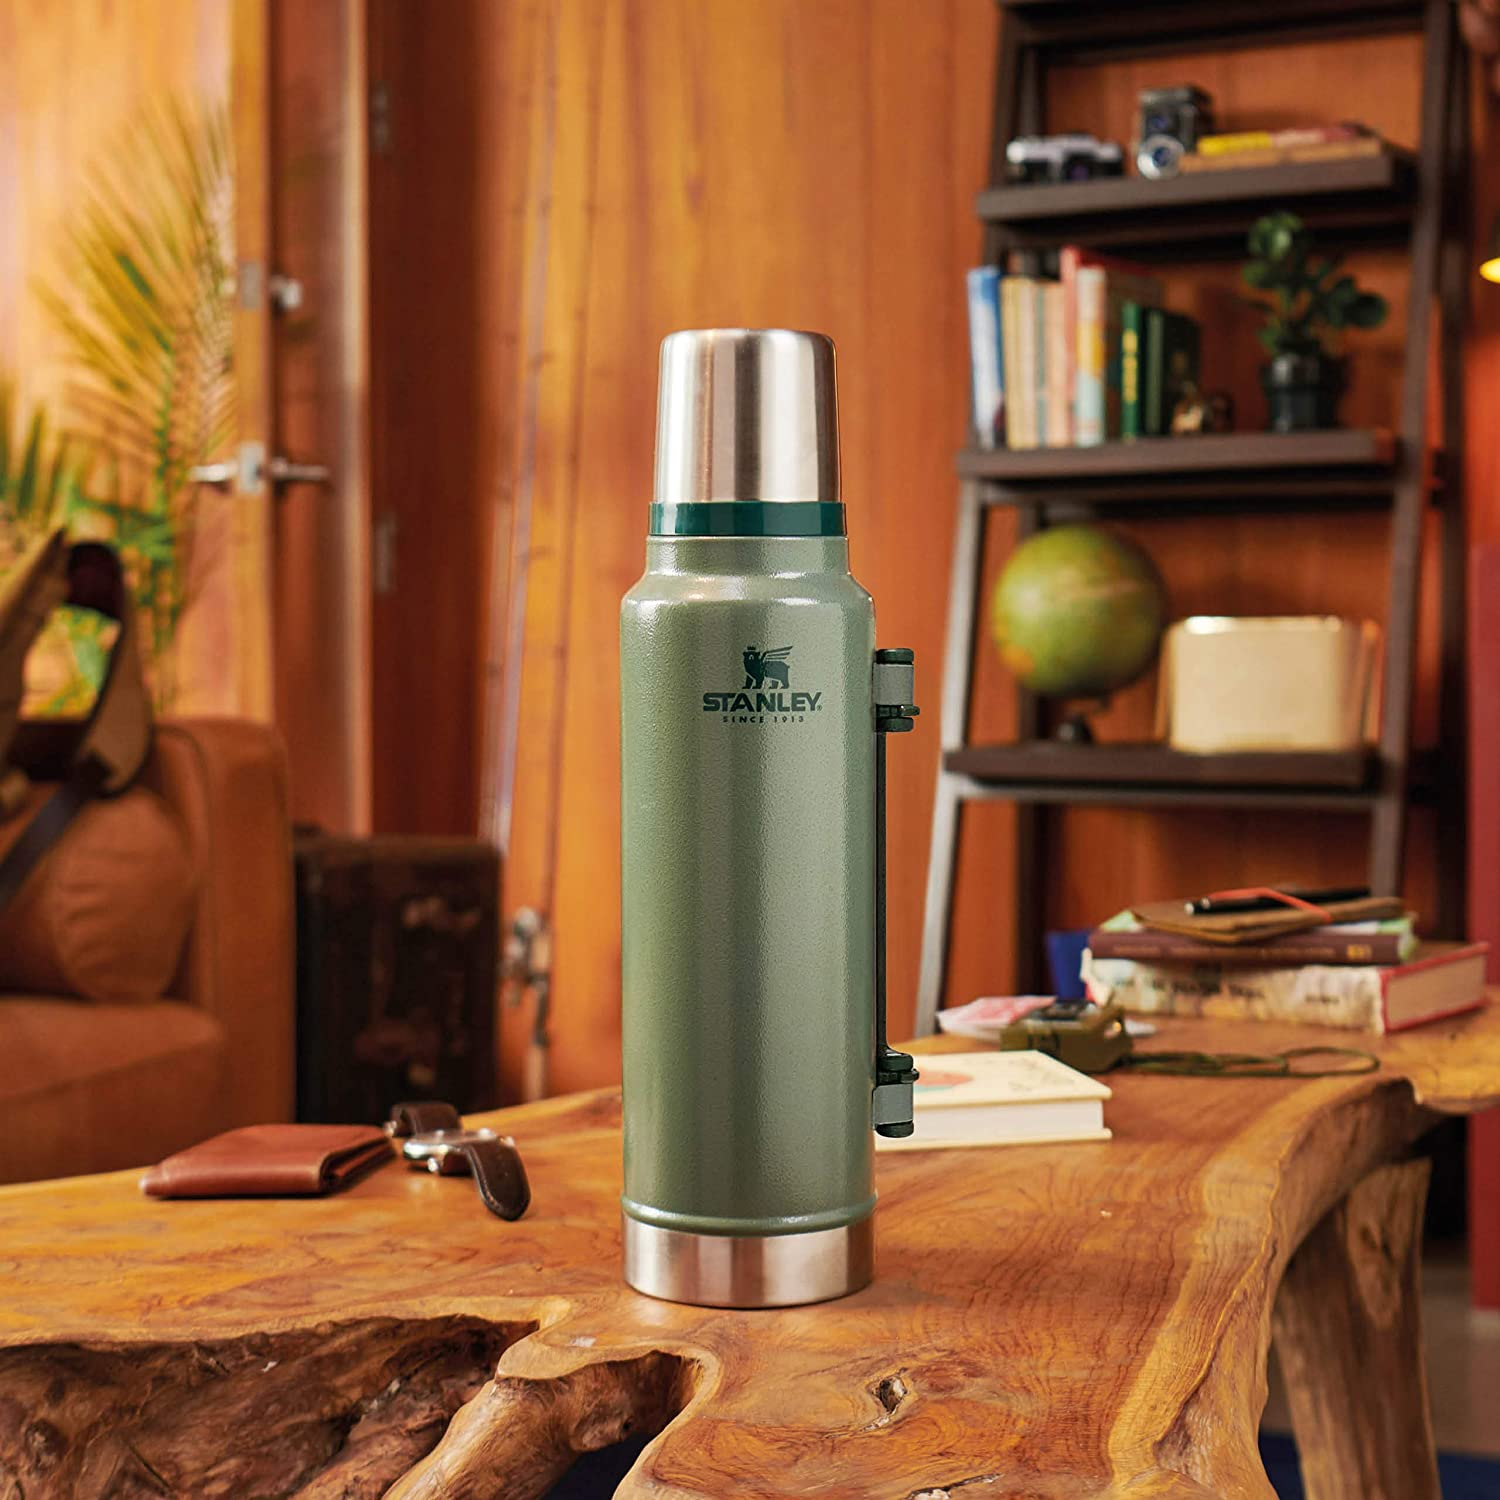 Stanley The Legendary Classic Vacuum Bottle 1.4L Hammertone Green 18/8 Stainless Steel Double-Wall Vacuum Insulation Water Bottle Leakproof+Packable Doubles As Cup Dishwasher Safe Naturally Bpa-Free: Amazon.es: Hogar